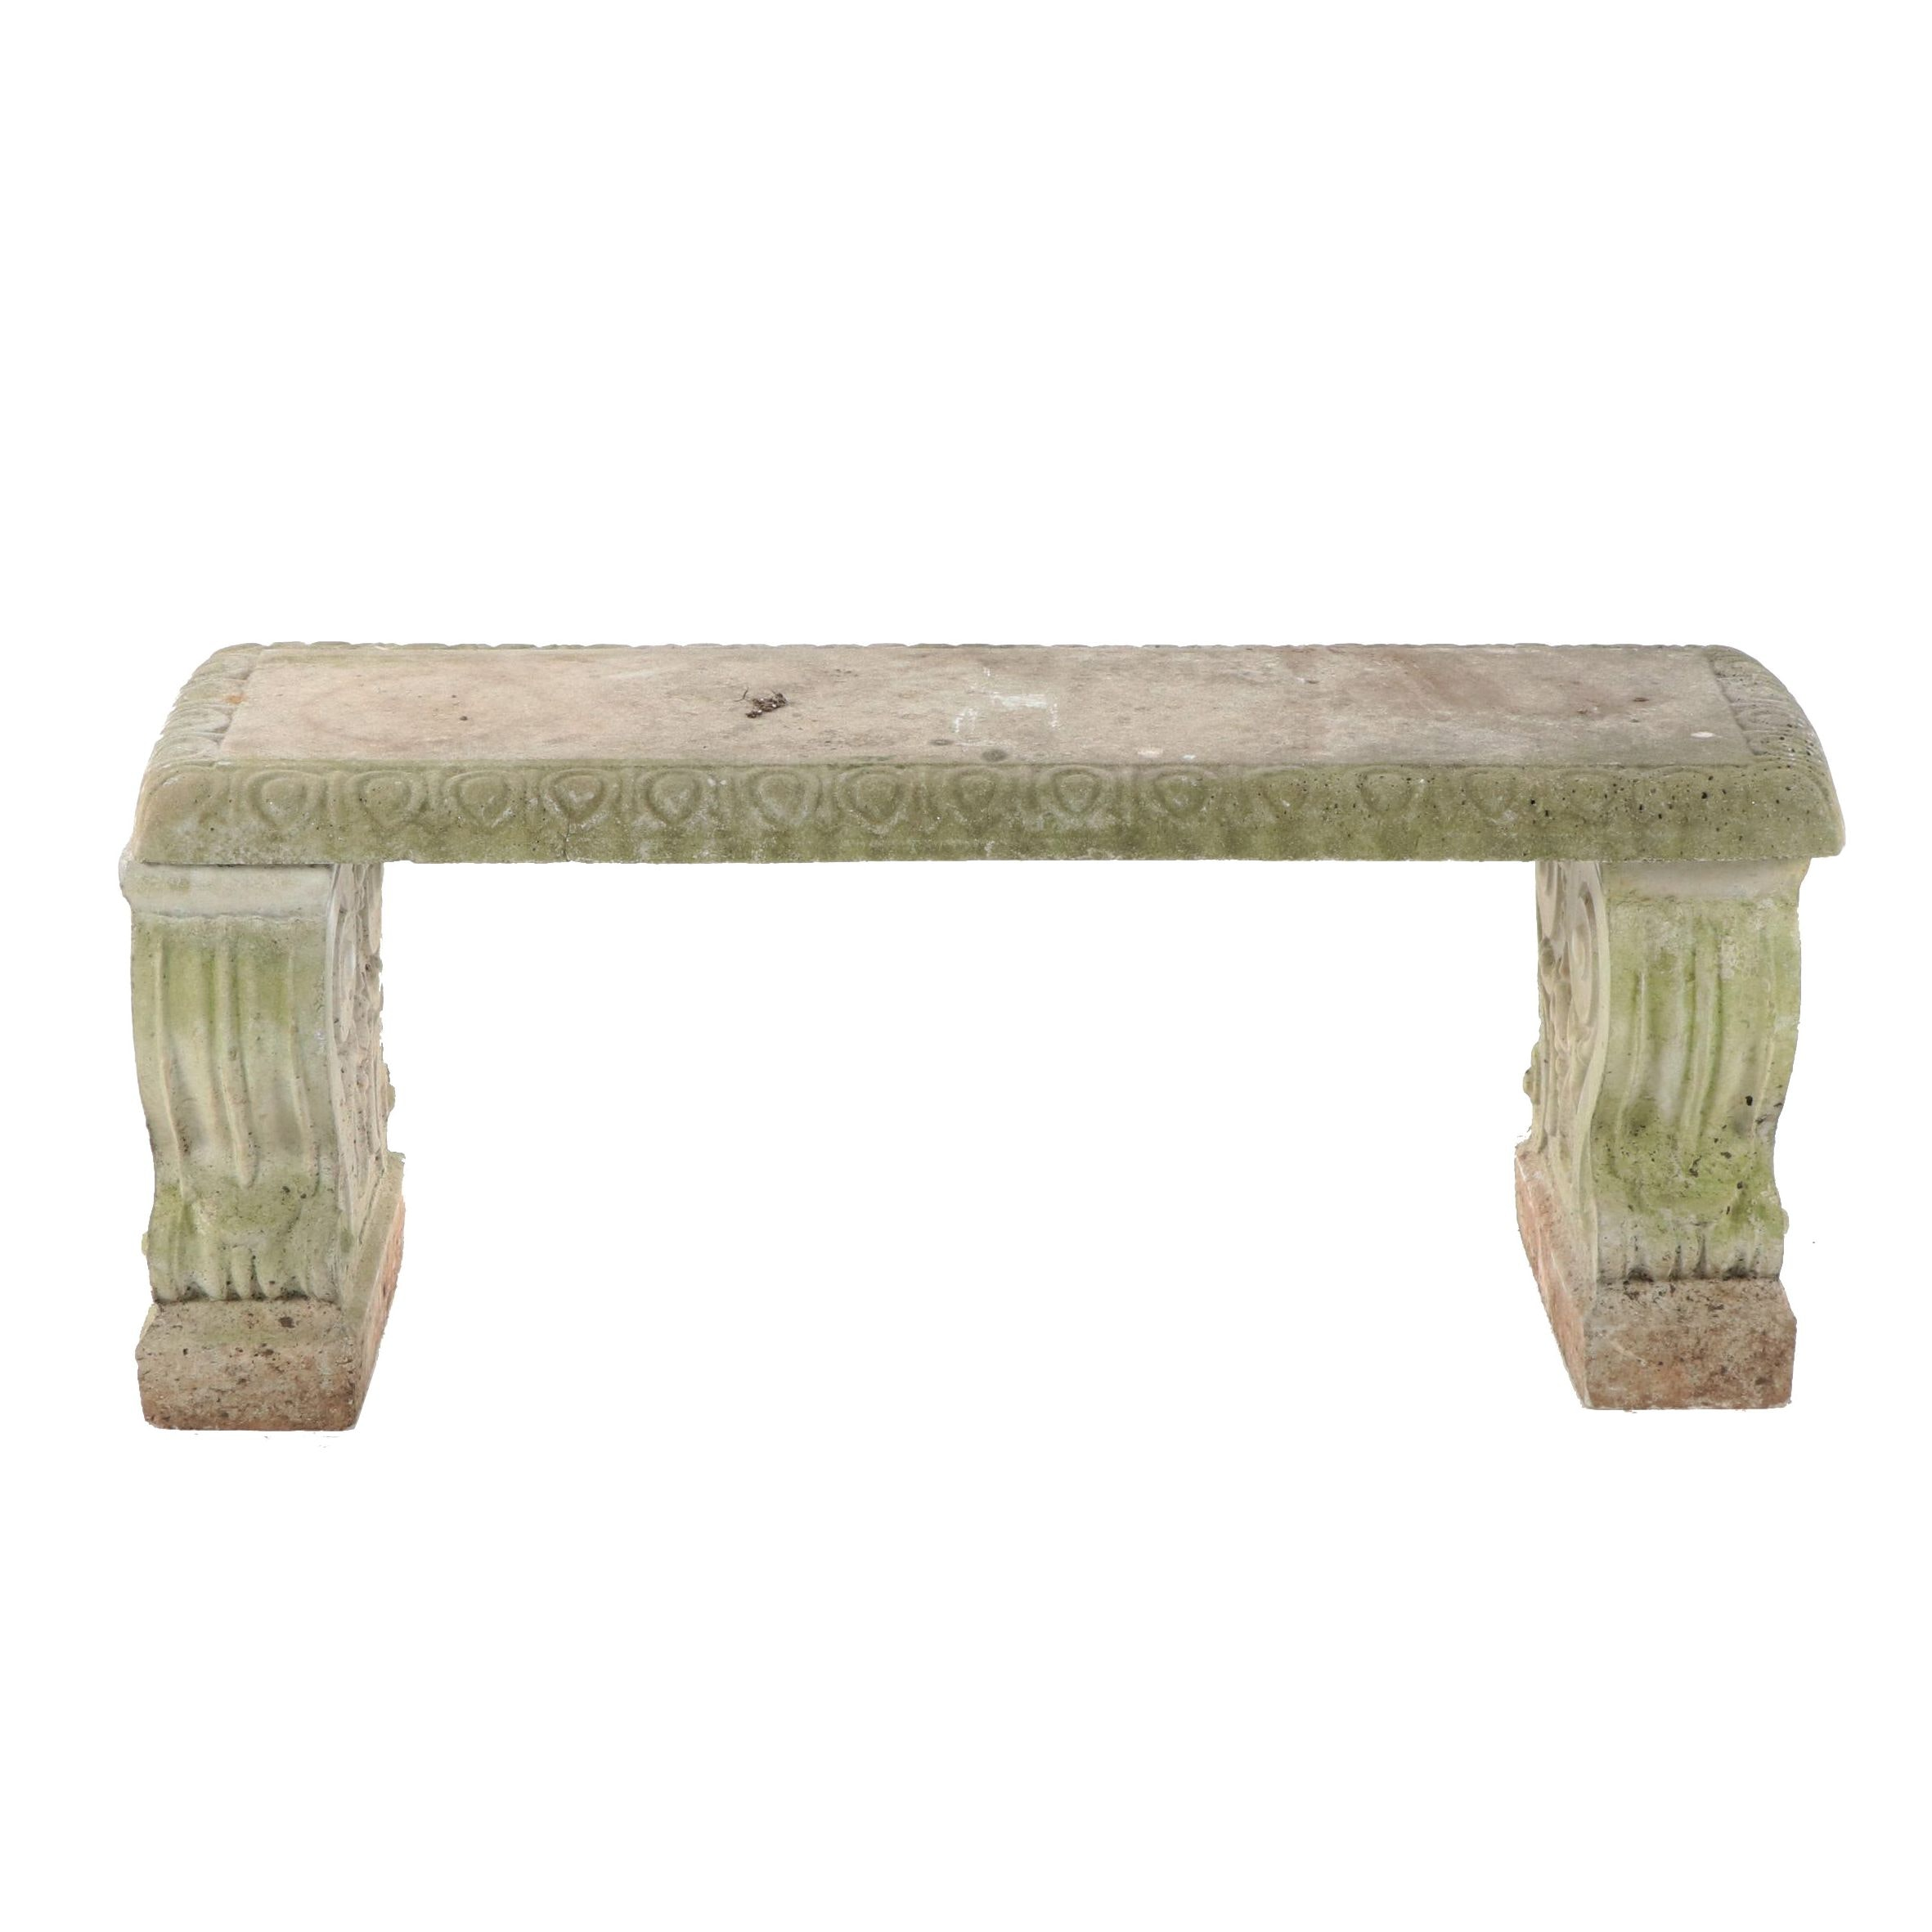 Outdoor Concrete Bench, 20th/21st Century